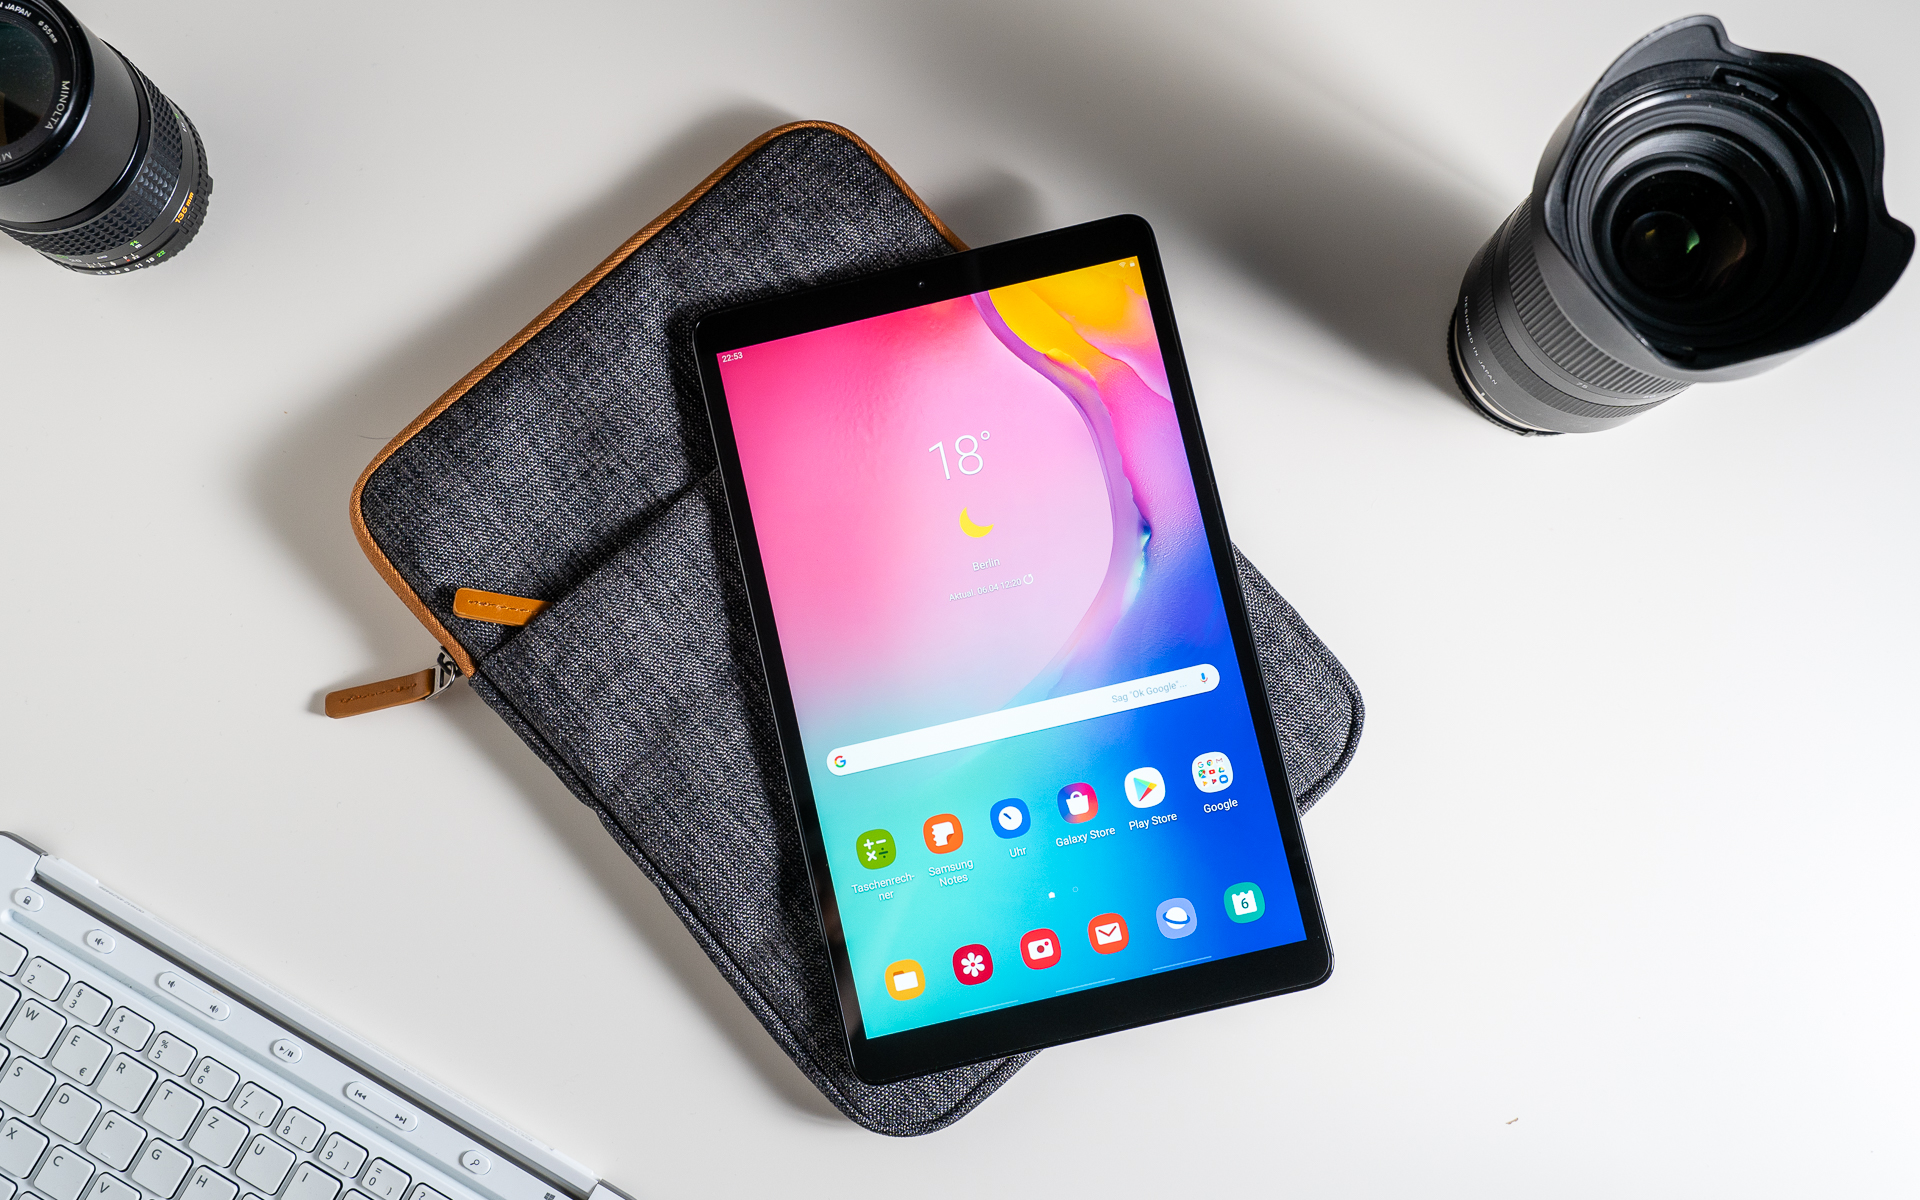 Samsung Galaxy Tab A 10 1 2019 Review: Is It Really A Good